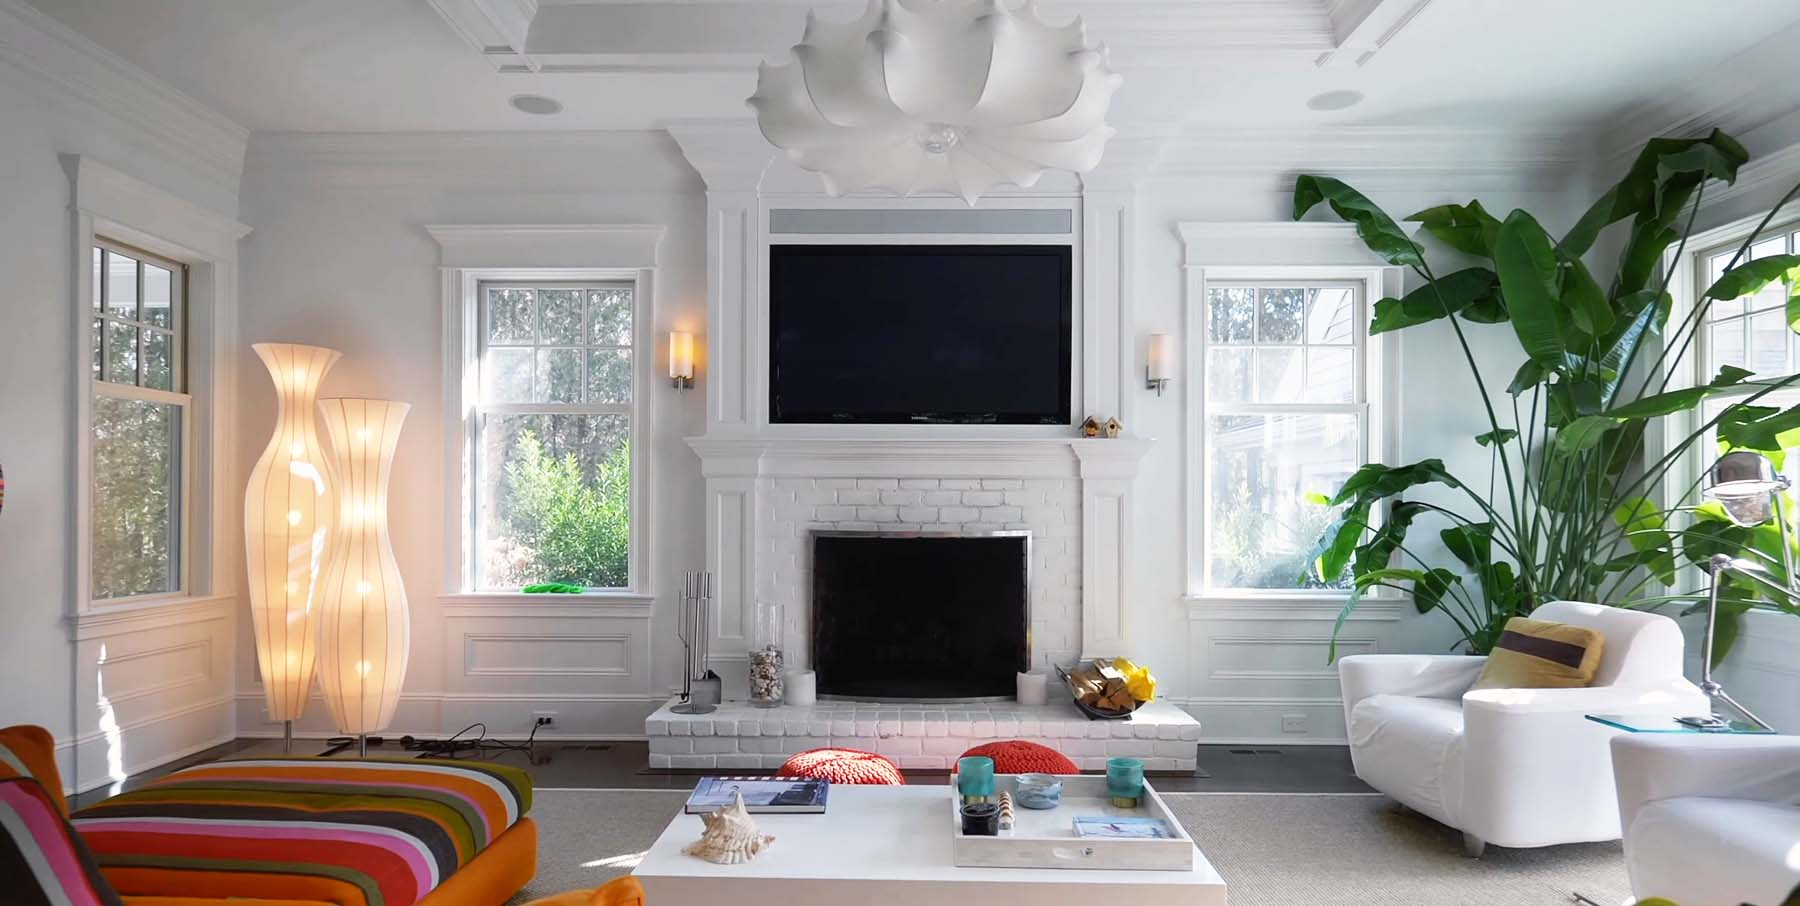 painted white brick fireplace surround with wall paneling crwon molding and fireplace TV